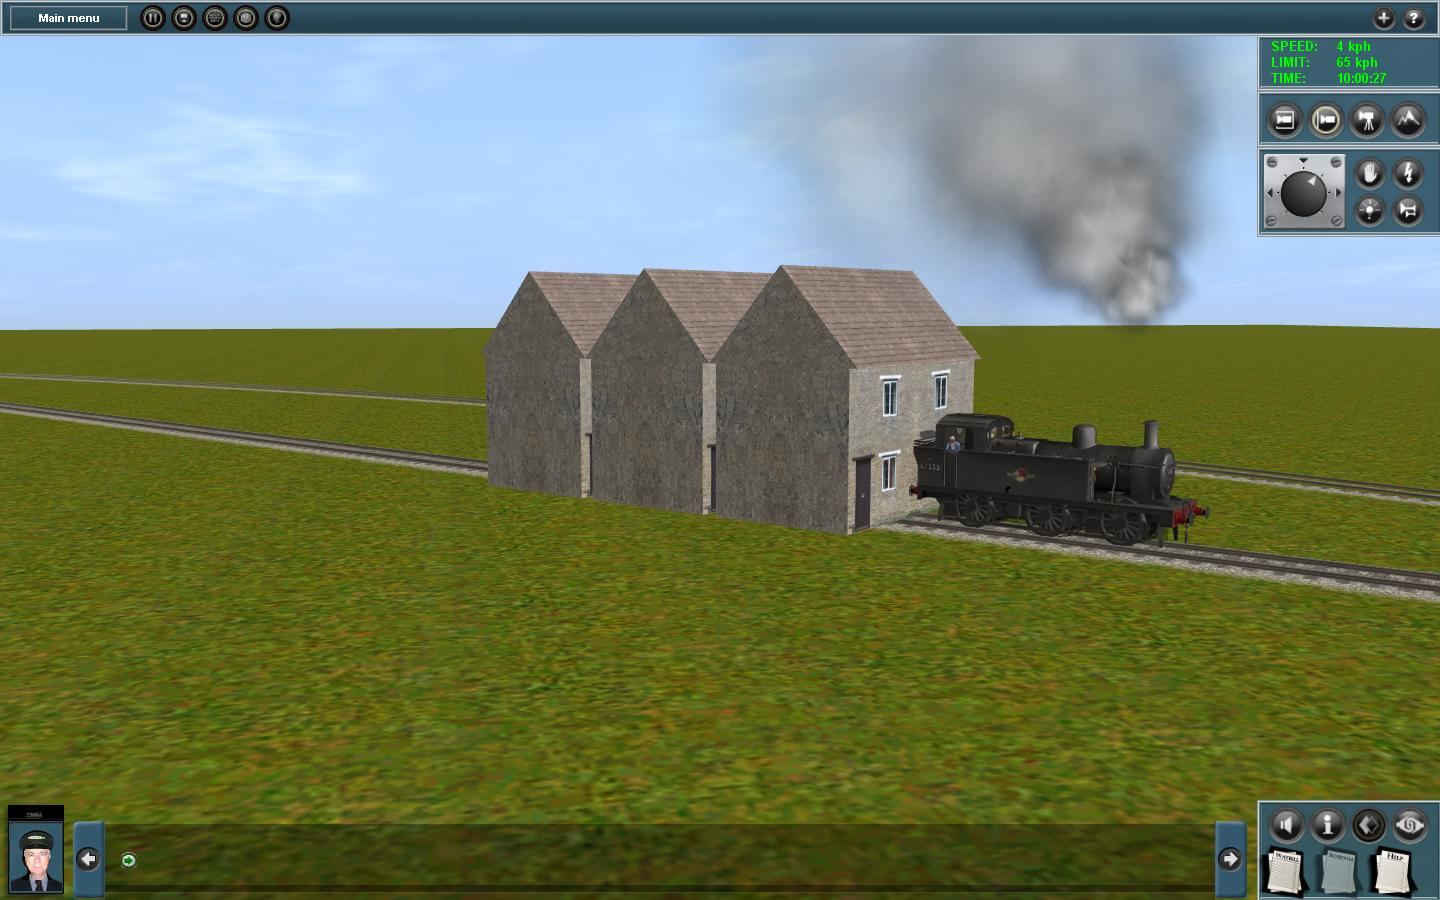 Trainz moving house screenshot 0001.jpg